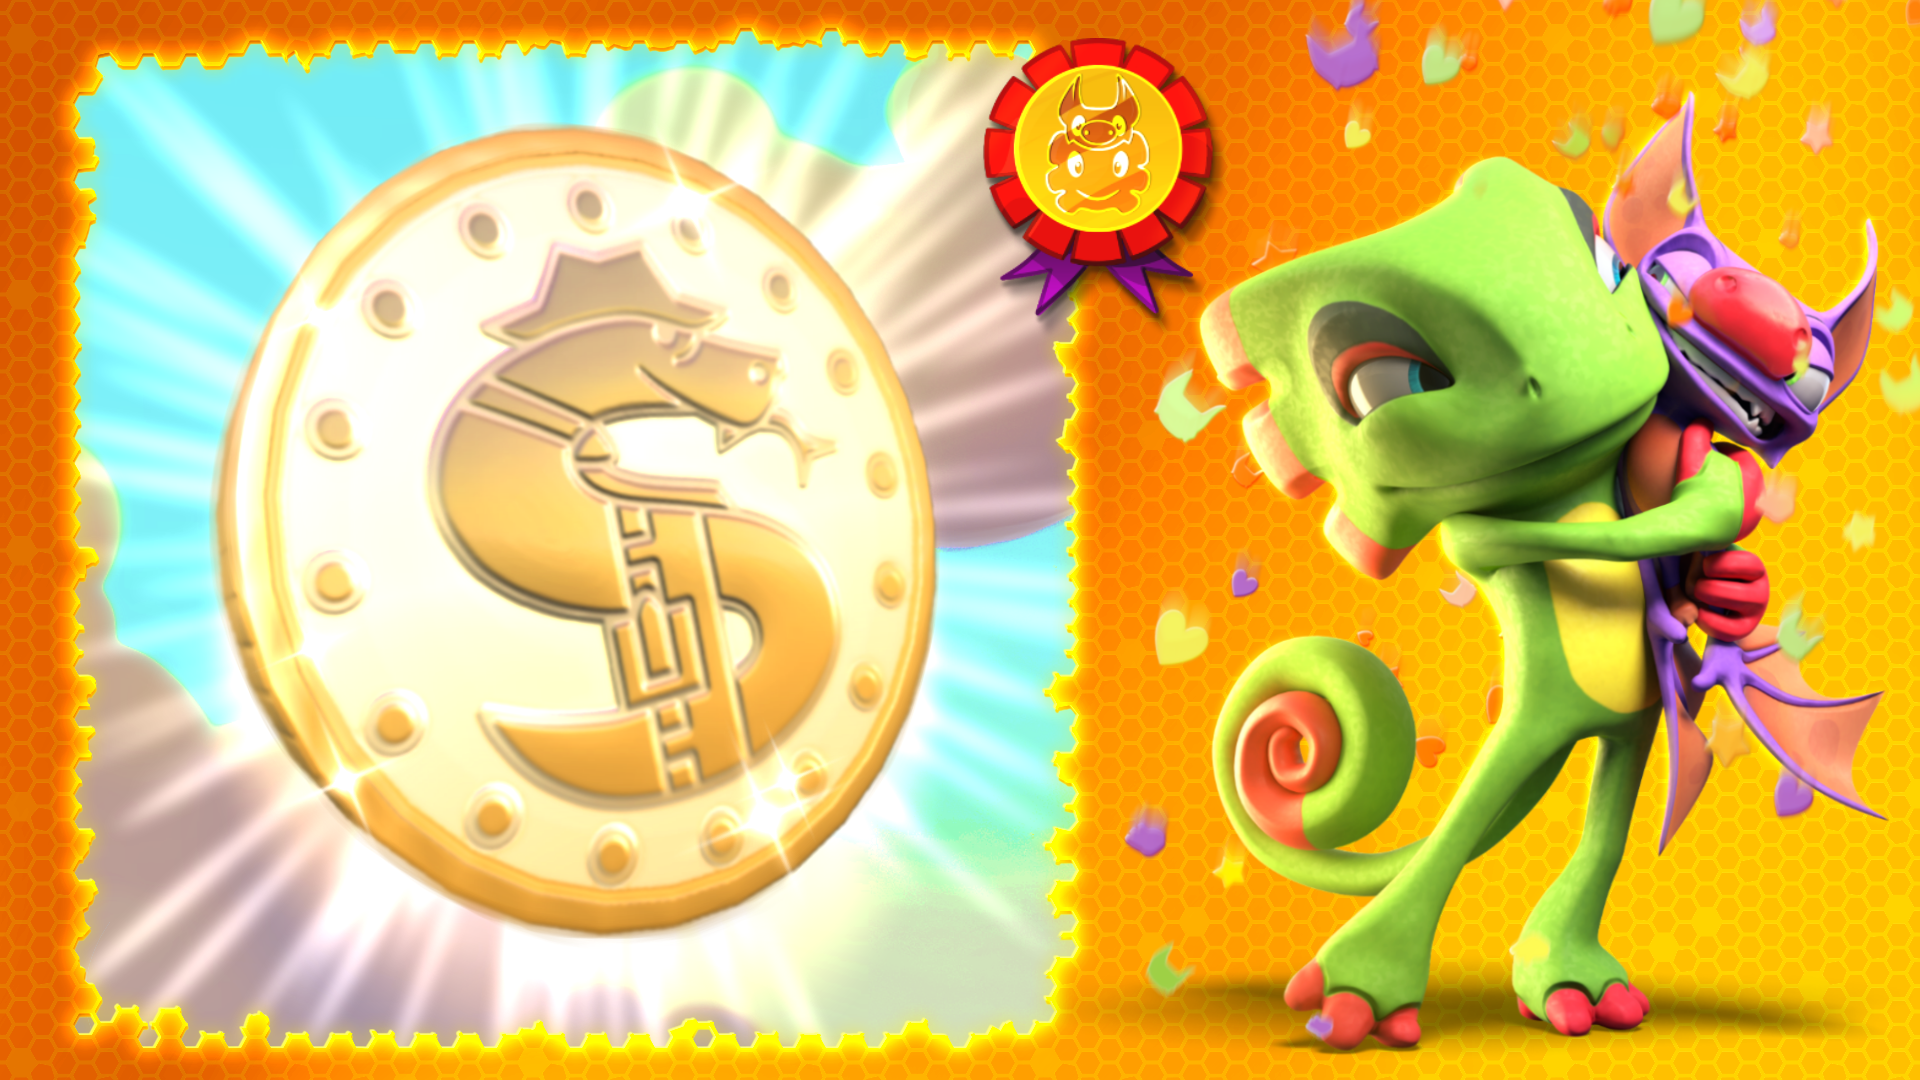 Icon for T.W.I.T. Coin...hmm, cryptic